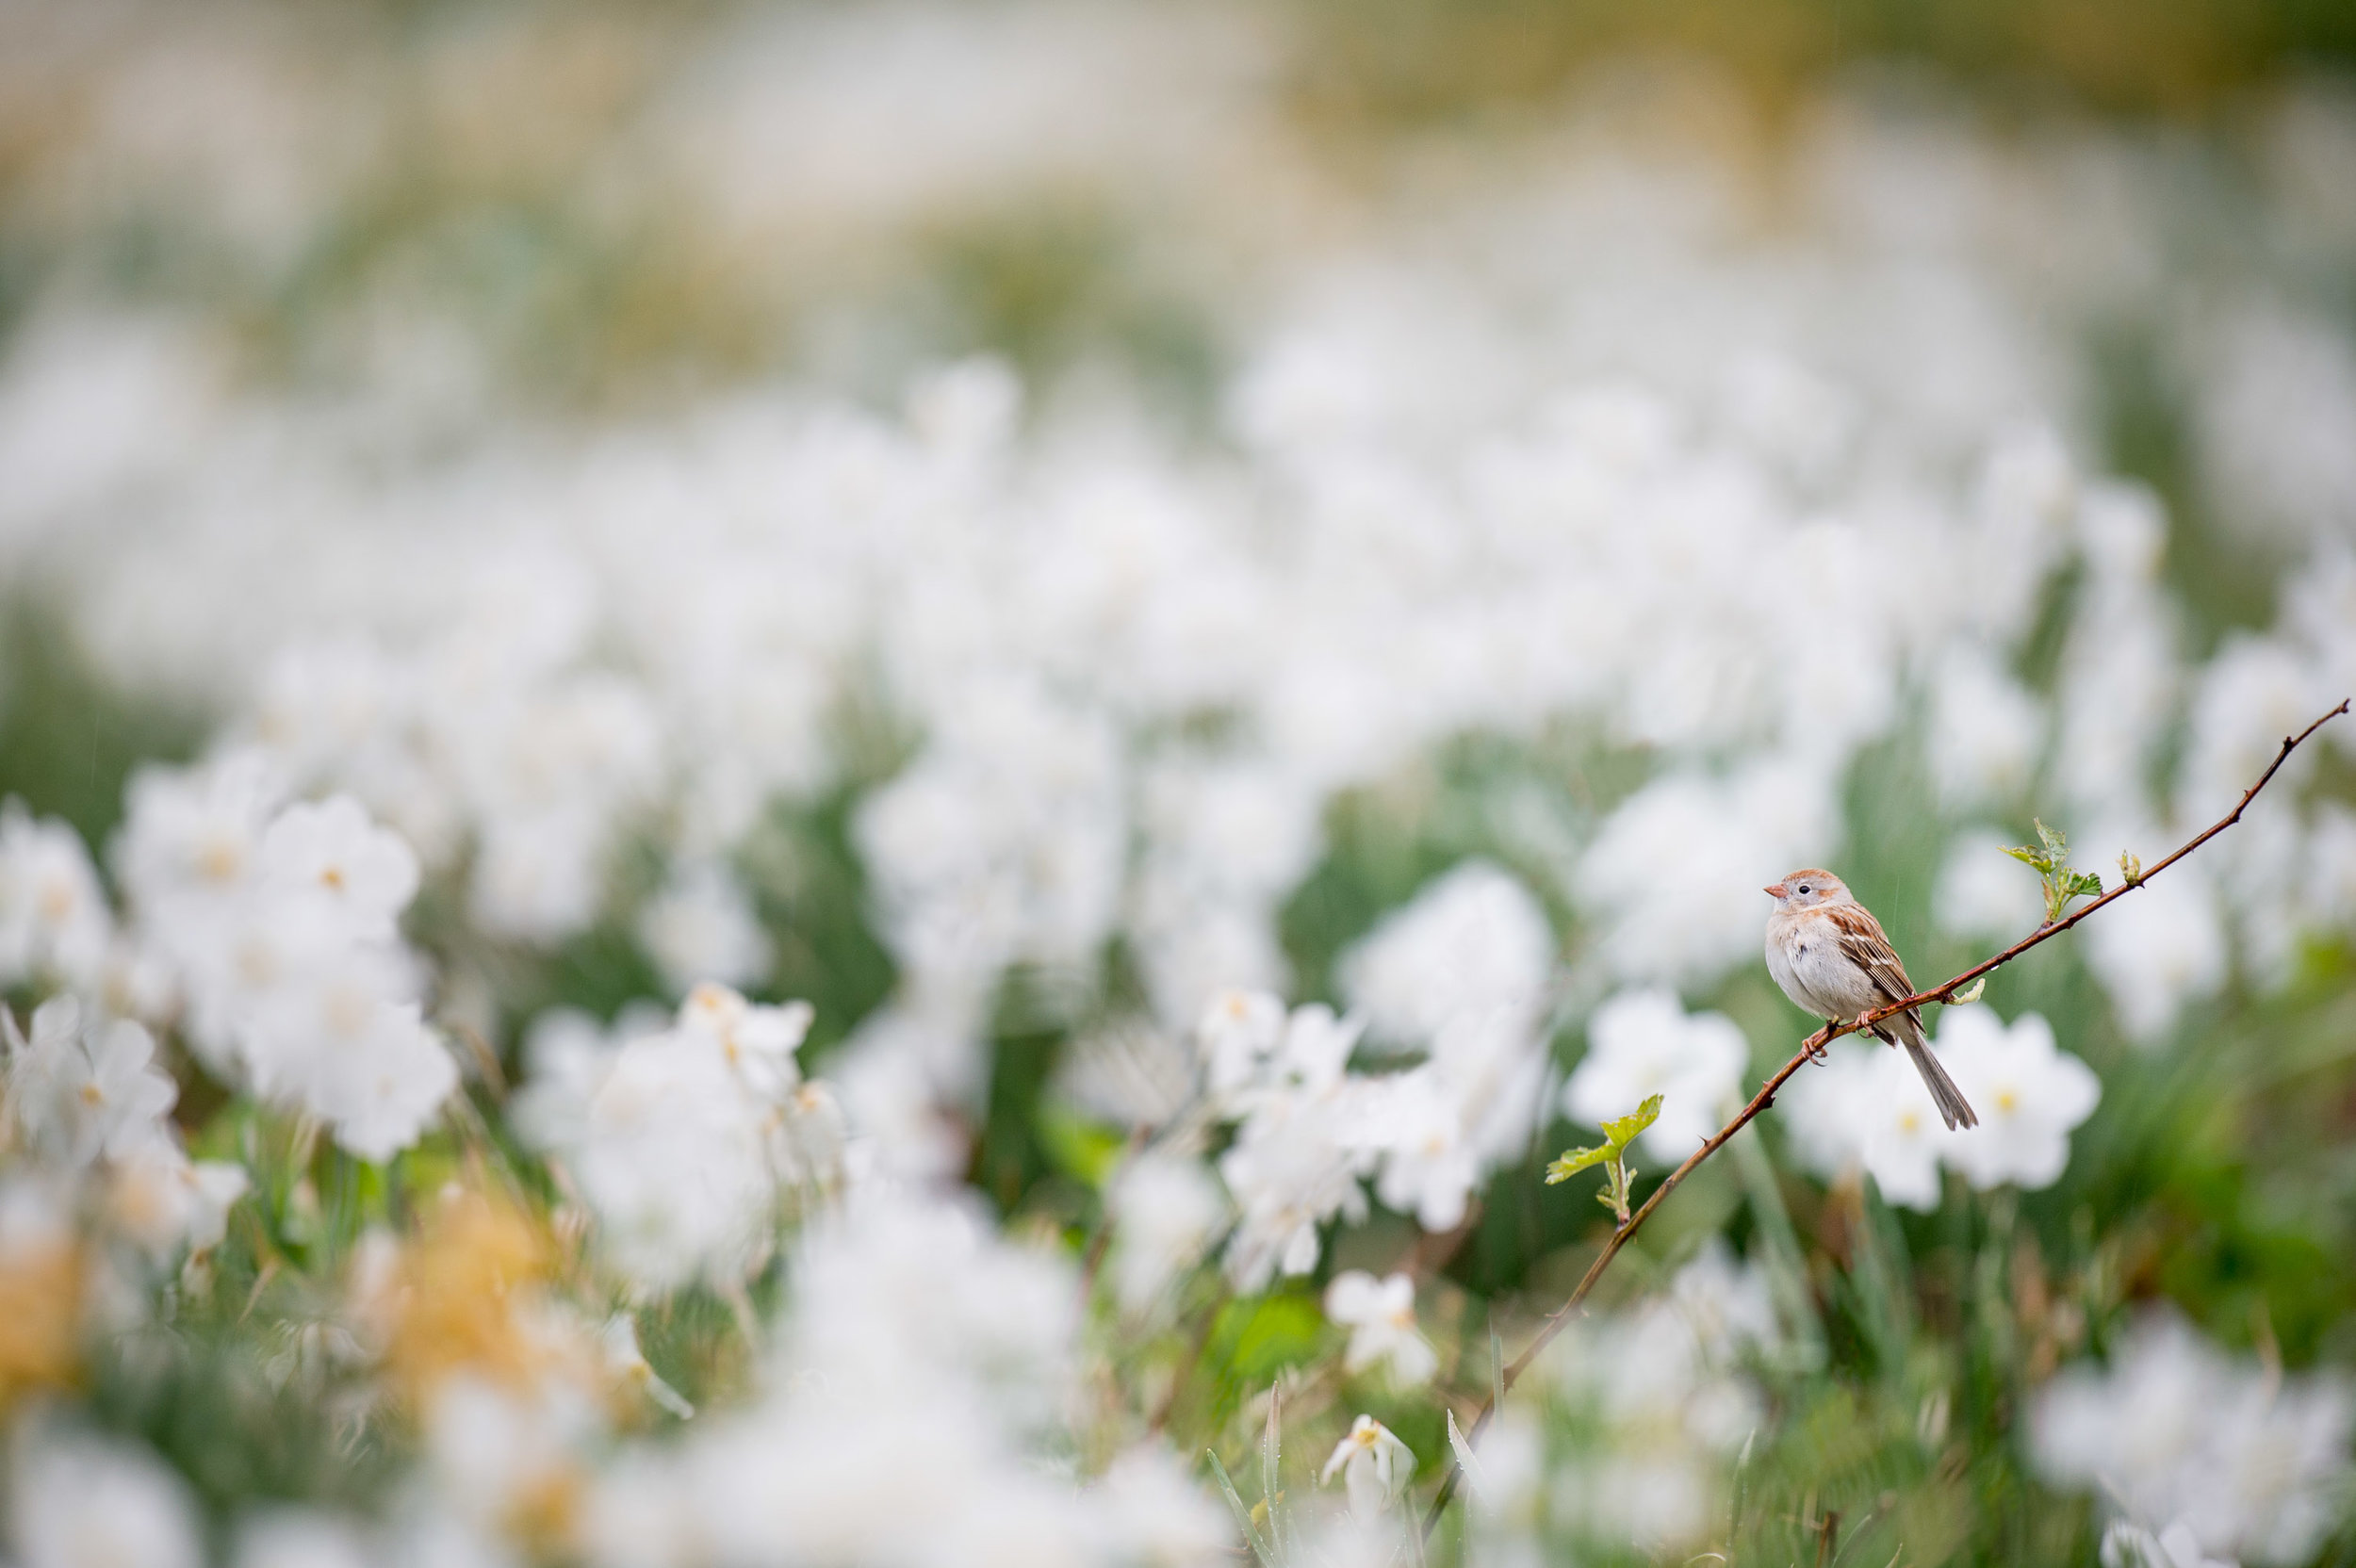 A tiny Field Sparrow decides to take a moment land in a field of Dafodils.